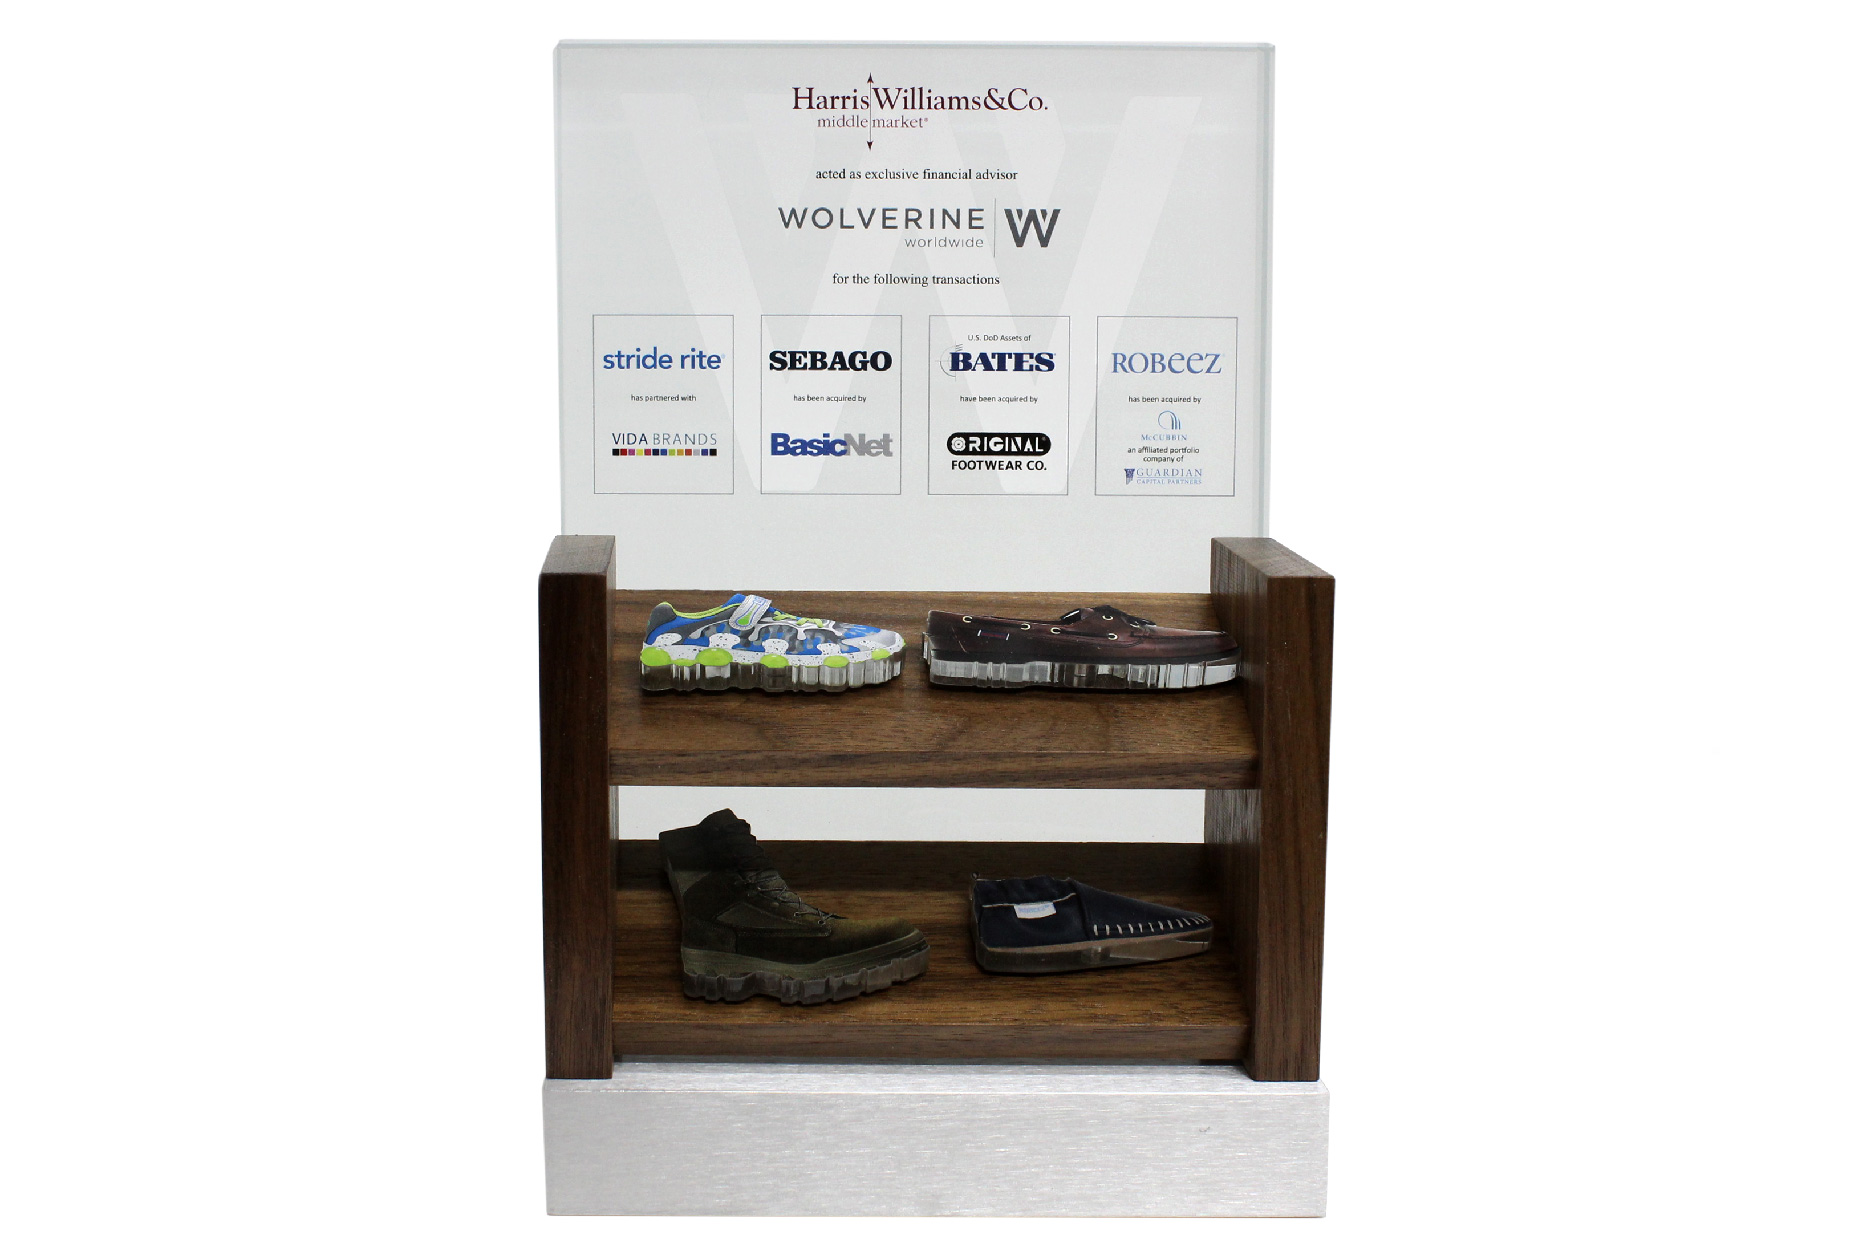 A detailed deal gift that incorporates a wood store shelf mock-up with color printed cut-out acrylic shoes. This tombstone was created for a complex, multi-acquisition deal.